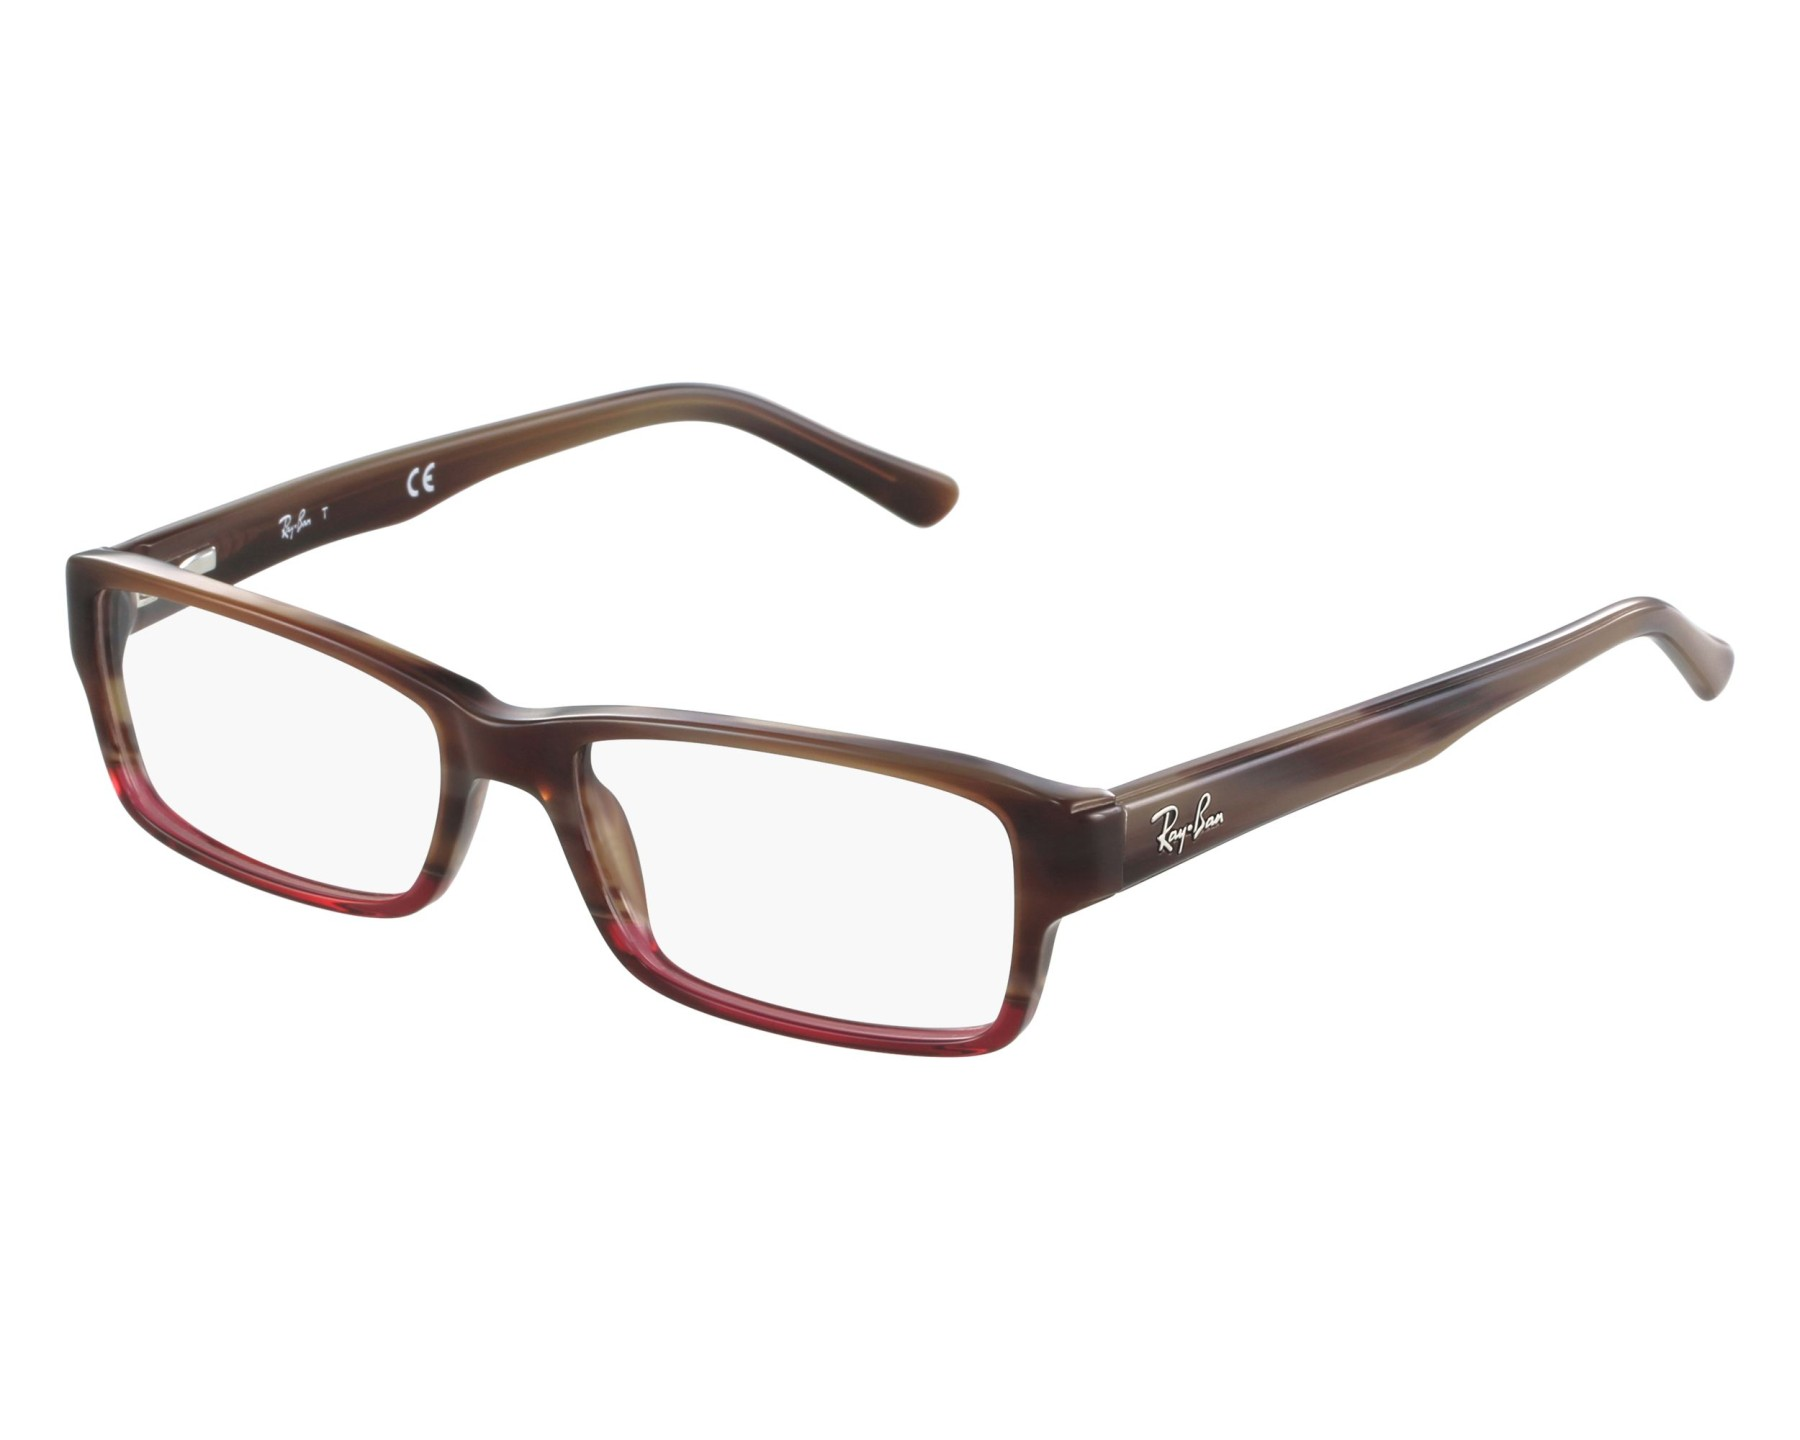 3ddf5bd8635 eyeglasses Ray-Ban RX-5169 5541 54-16 Brown Red front view